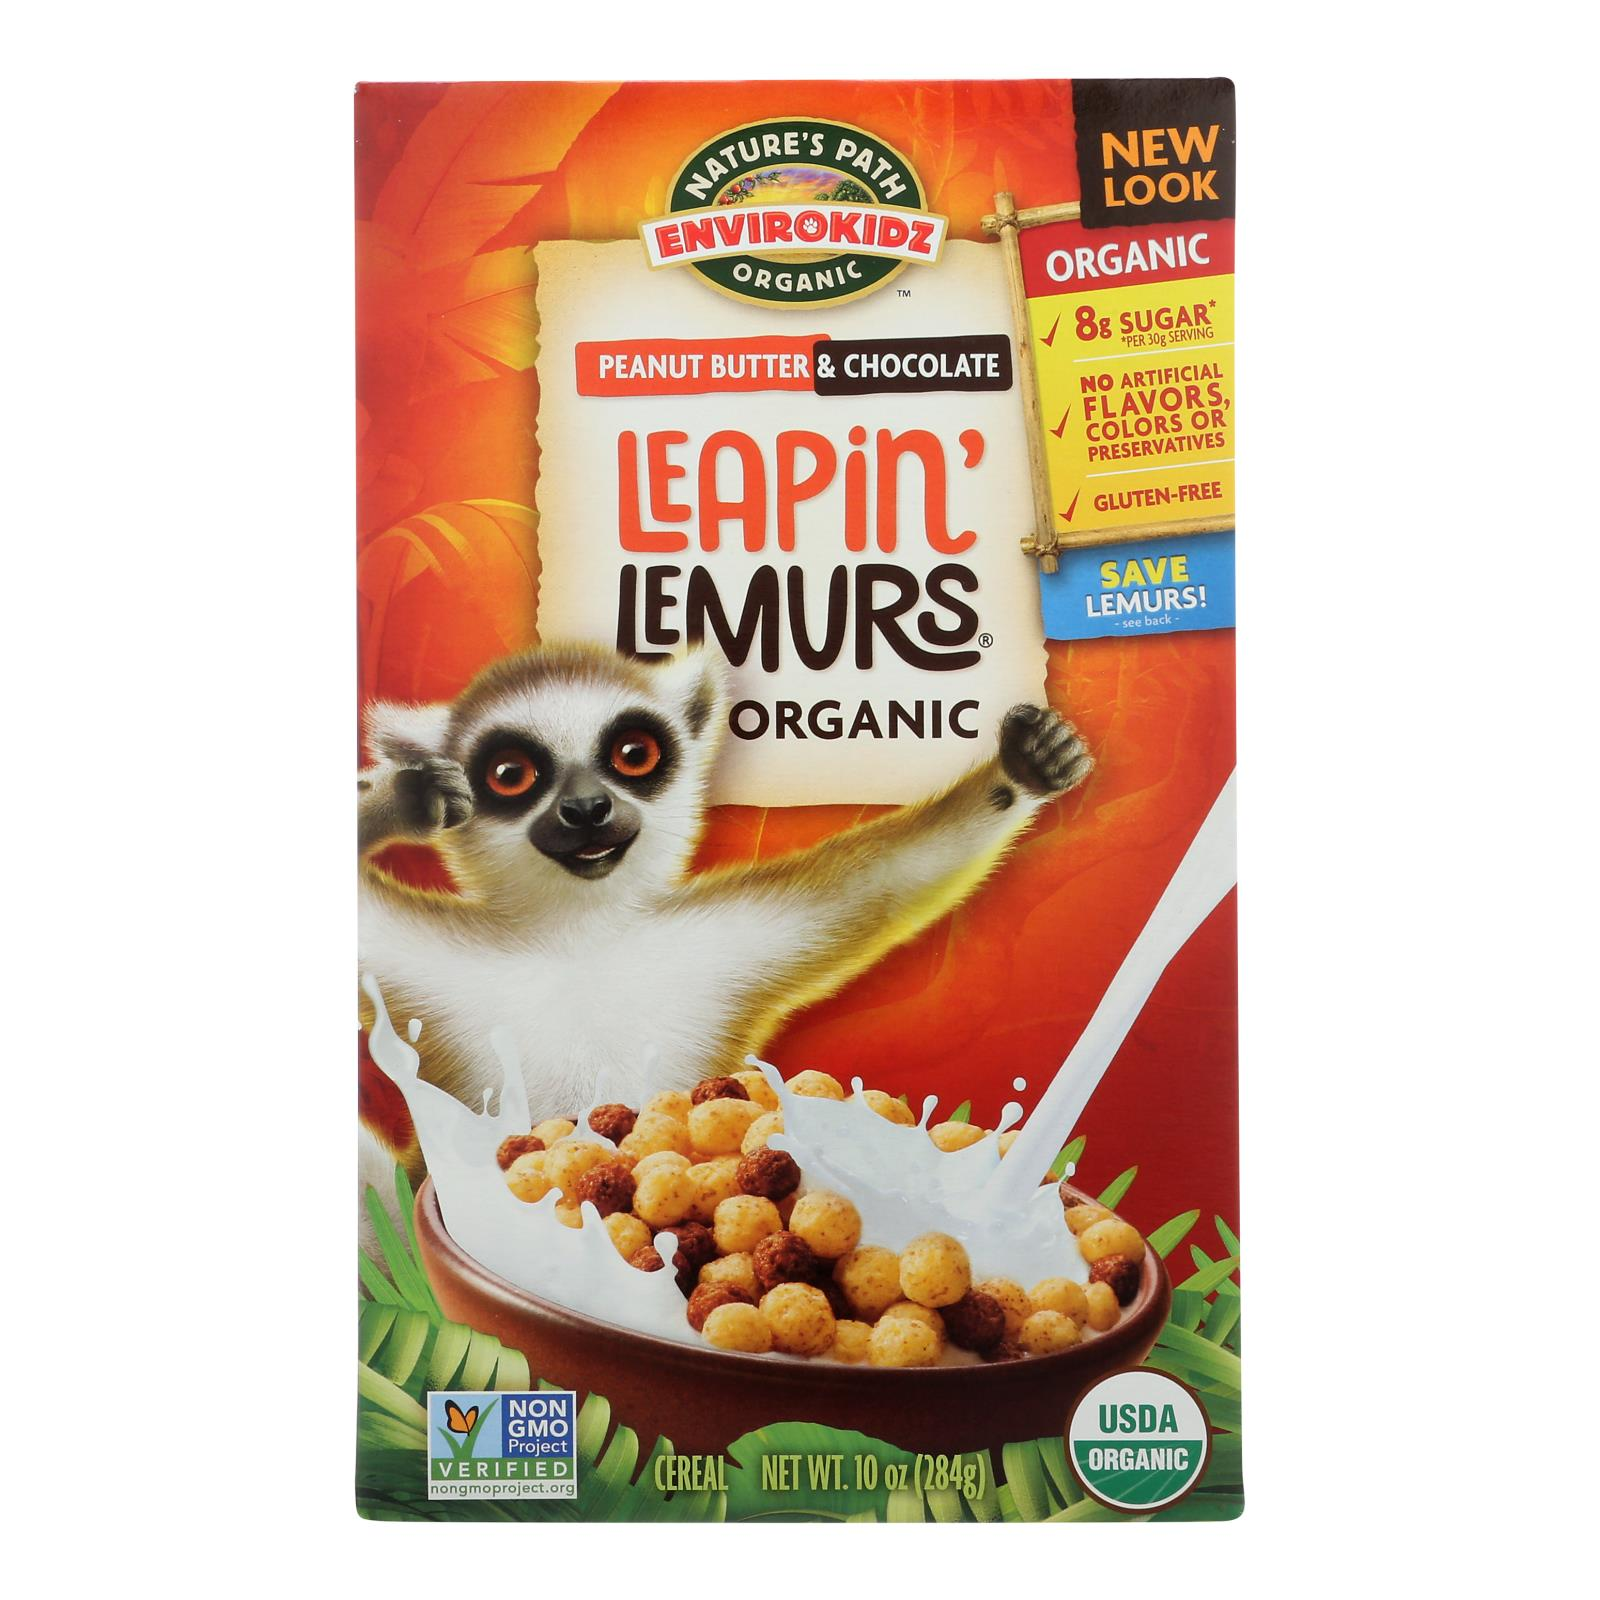 Envirokidz - Leapin' Lemurs Cereal - Peanut Butter and Chocolate - Case of 12 - 10 oz.